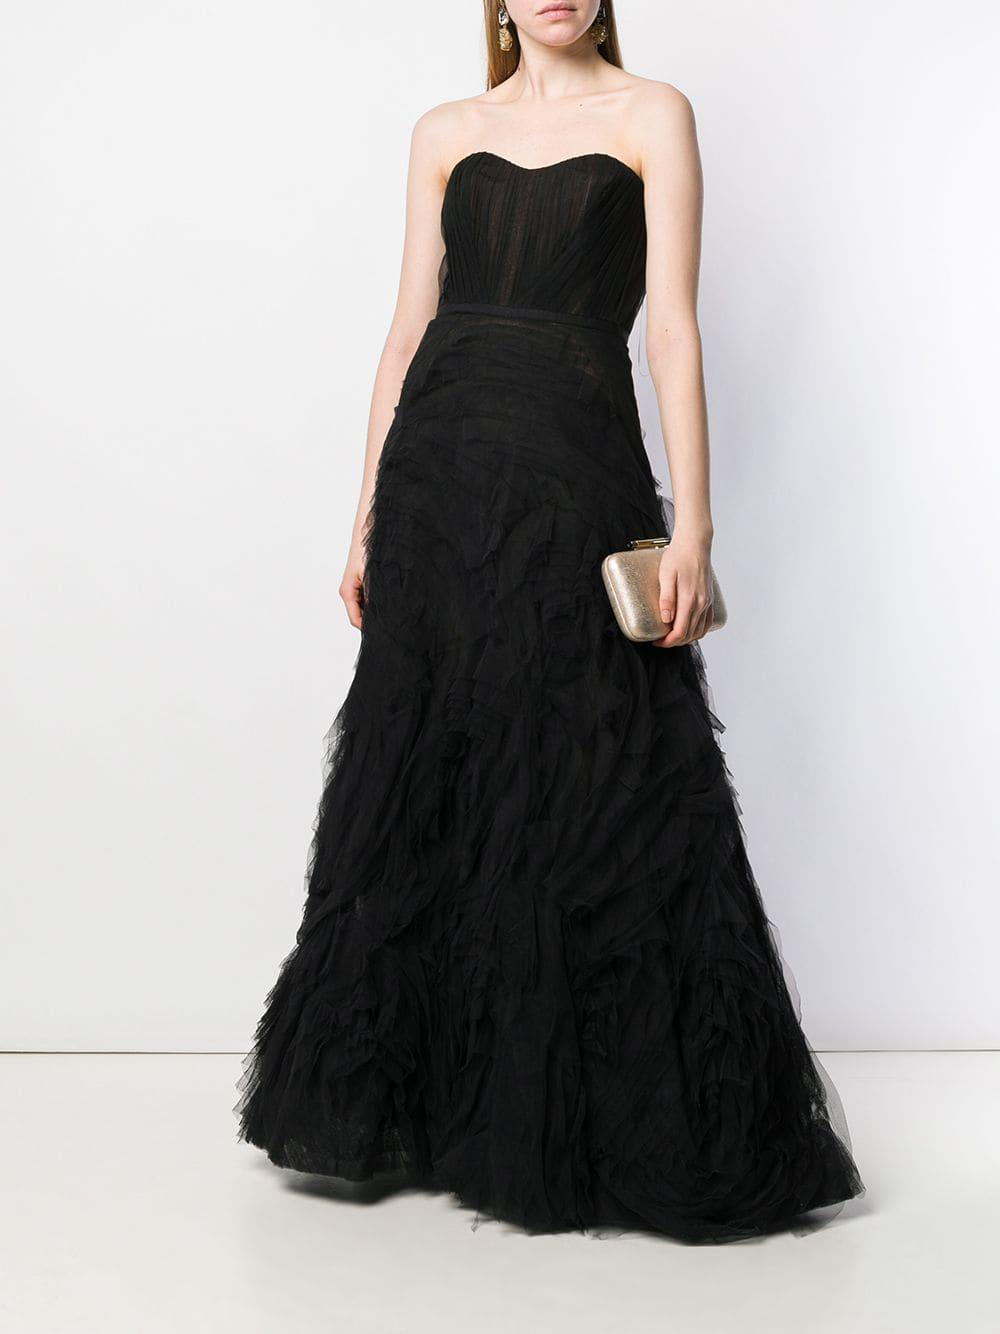 3a1bf216ed954 Lyst - Marchesa notte Strapless Textured Tulle Gown in Black